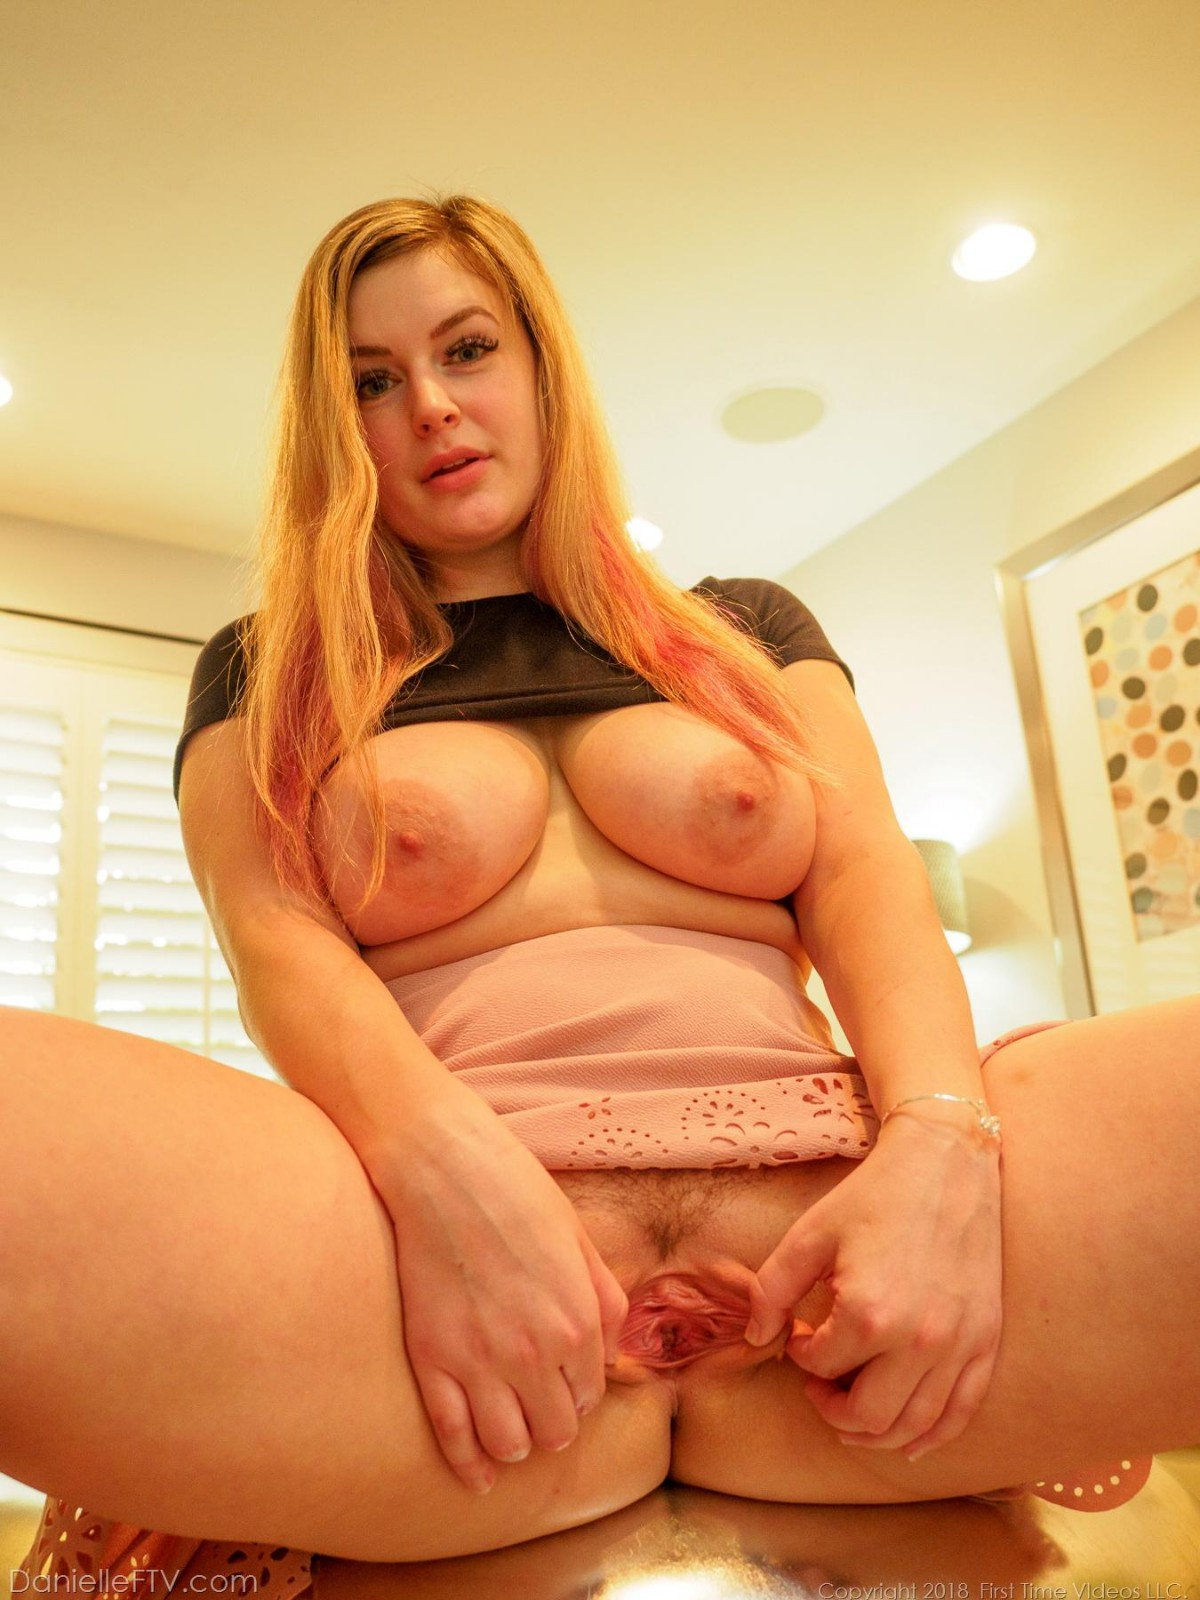 💦💦⎠⎝ MeeT & SexX➹⁀ ⎛⎛⎛Any GuY➹⁀ ⎛⎛⎛Interested IN⎠💦💦